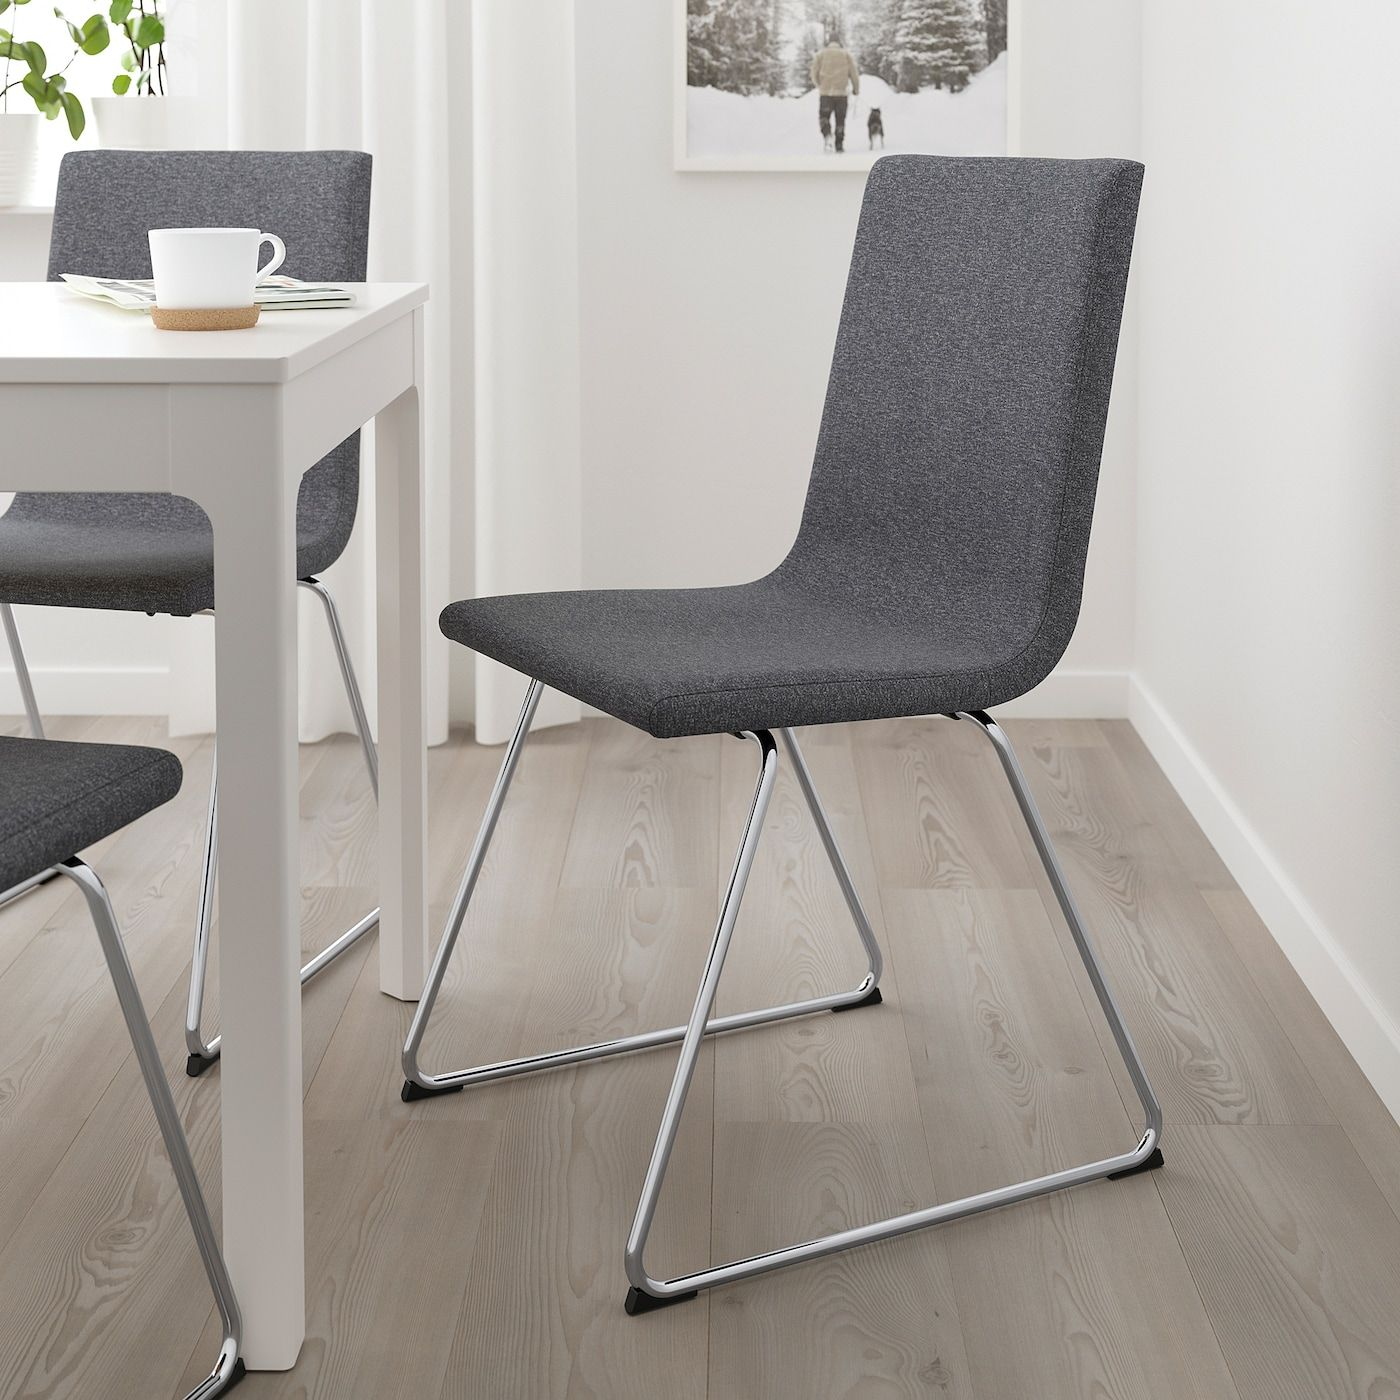 Volfgang Chair Chrome Plated Gunnared Medium Gray Ikea In 2020 Leder Esszimmer Stuhle Ikea Stuhle Esszimmer Venjakob Mobel